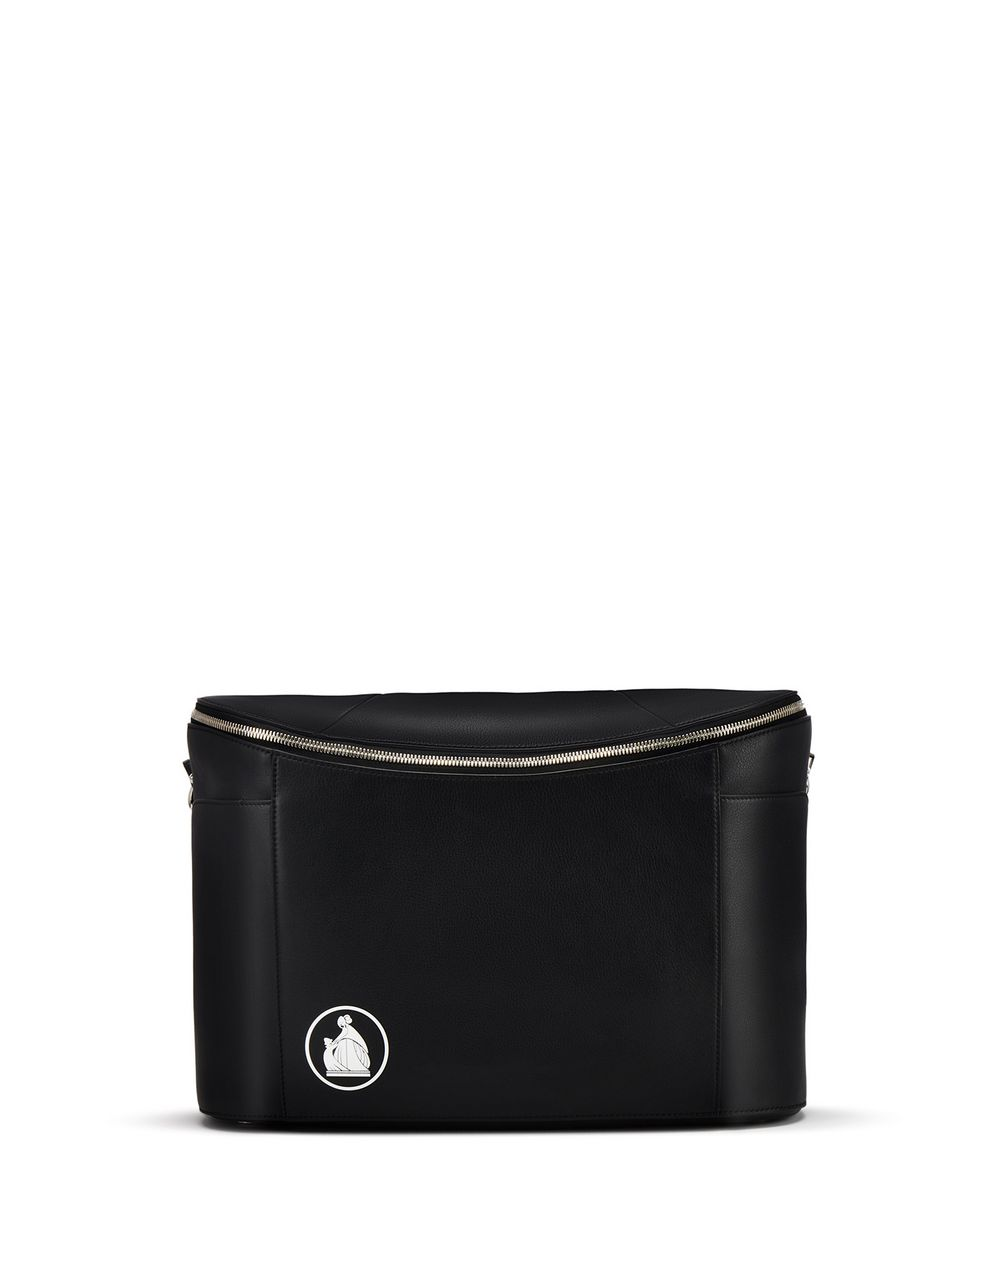 BLACK COOLER BAG - Lanvin